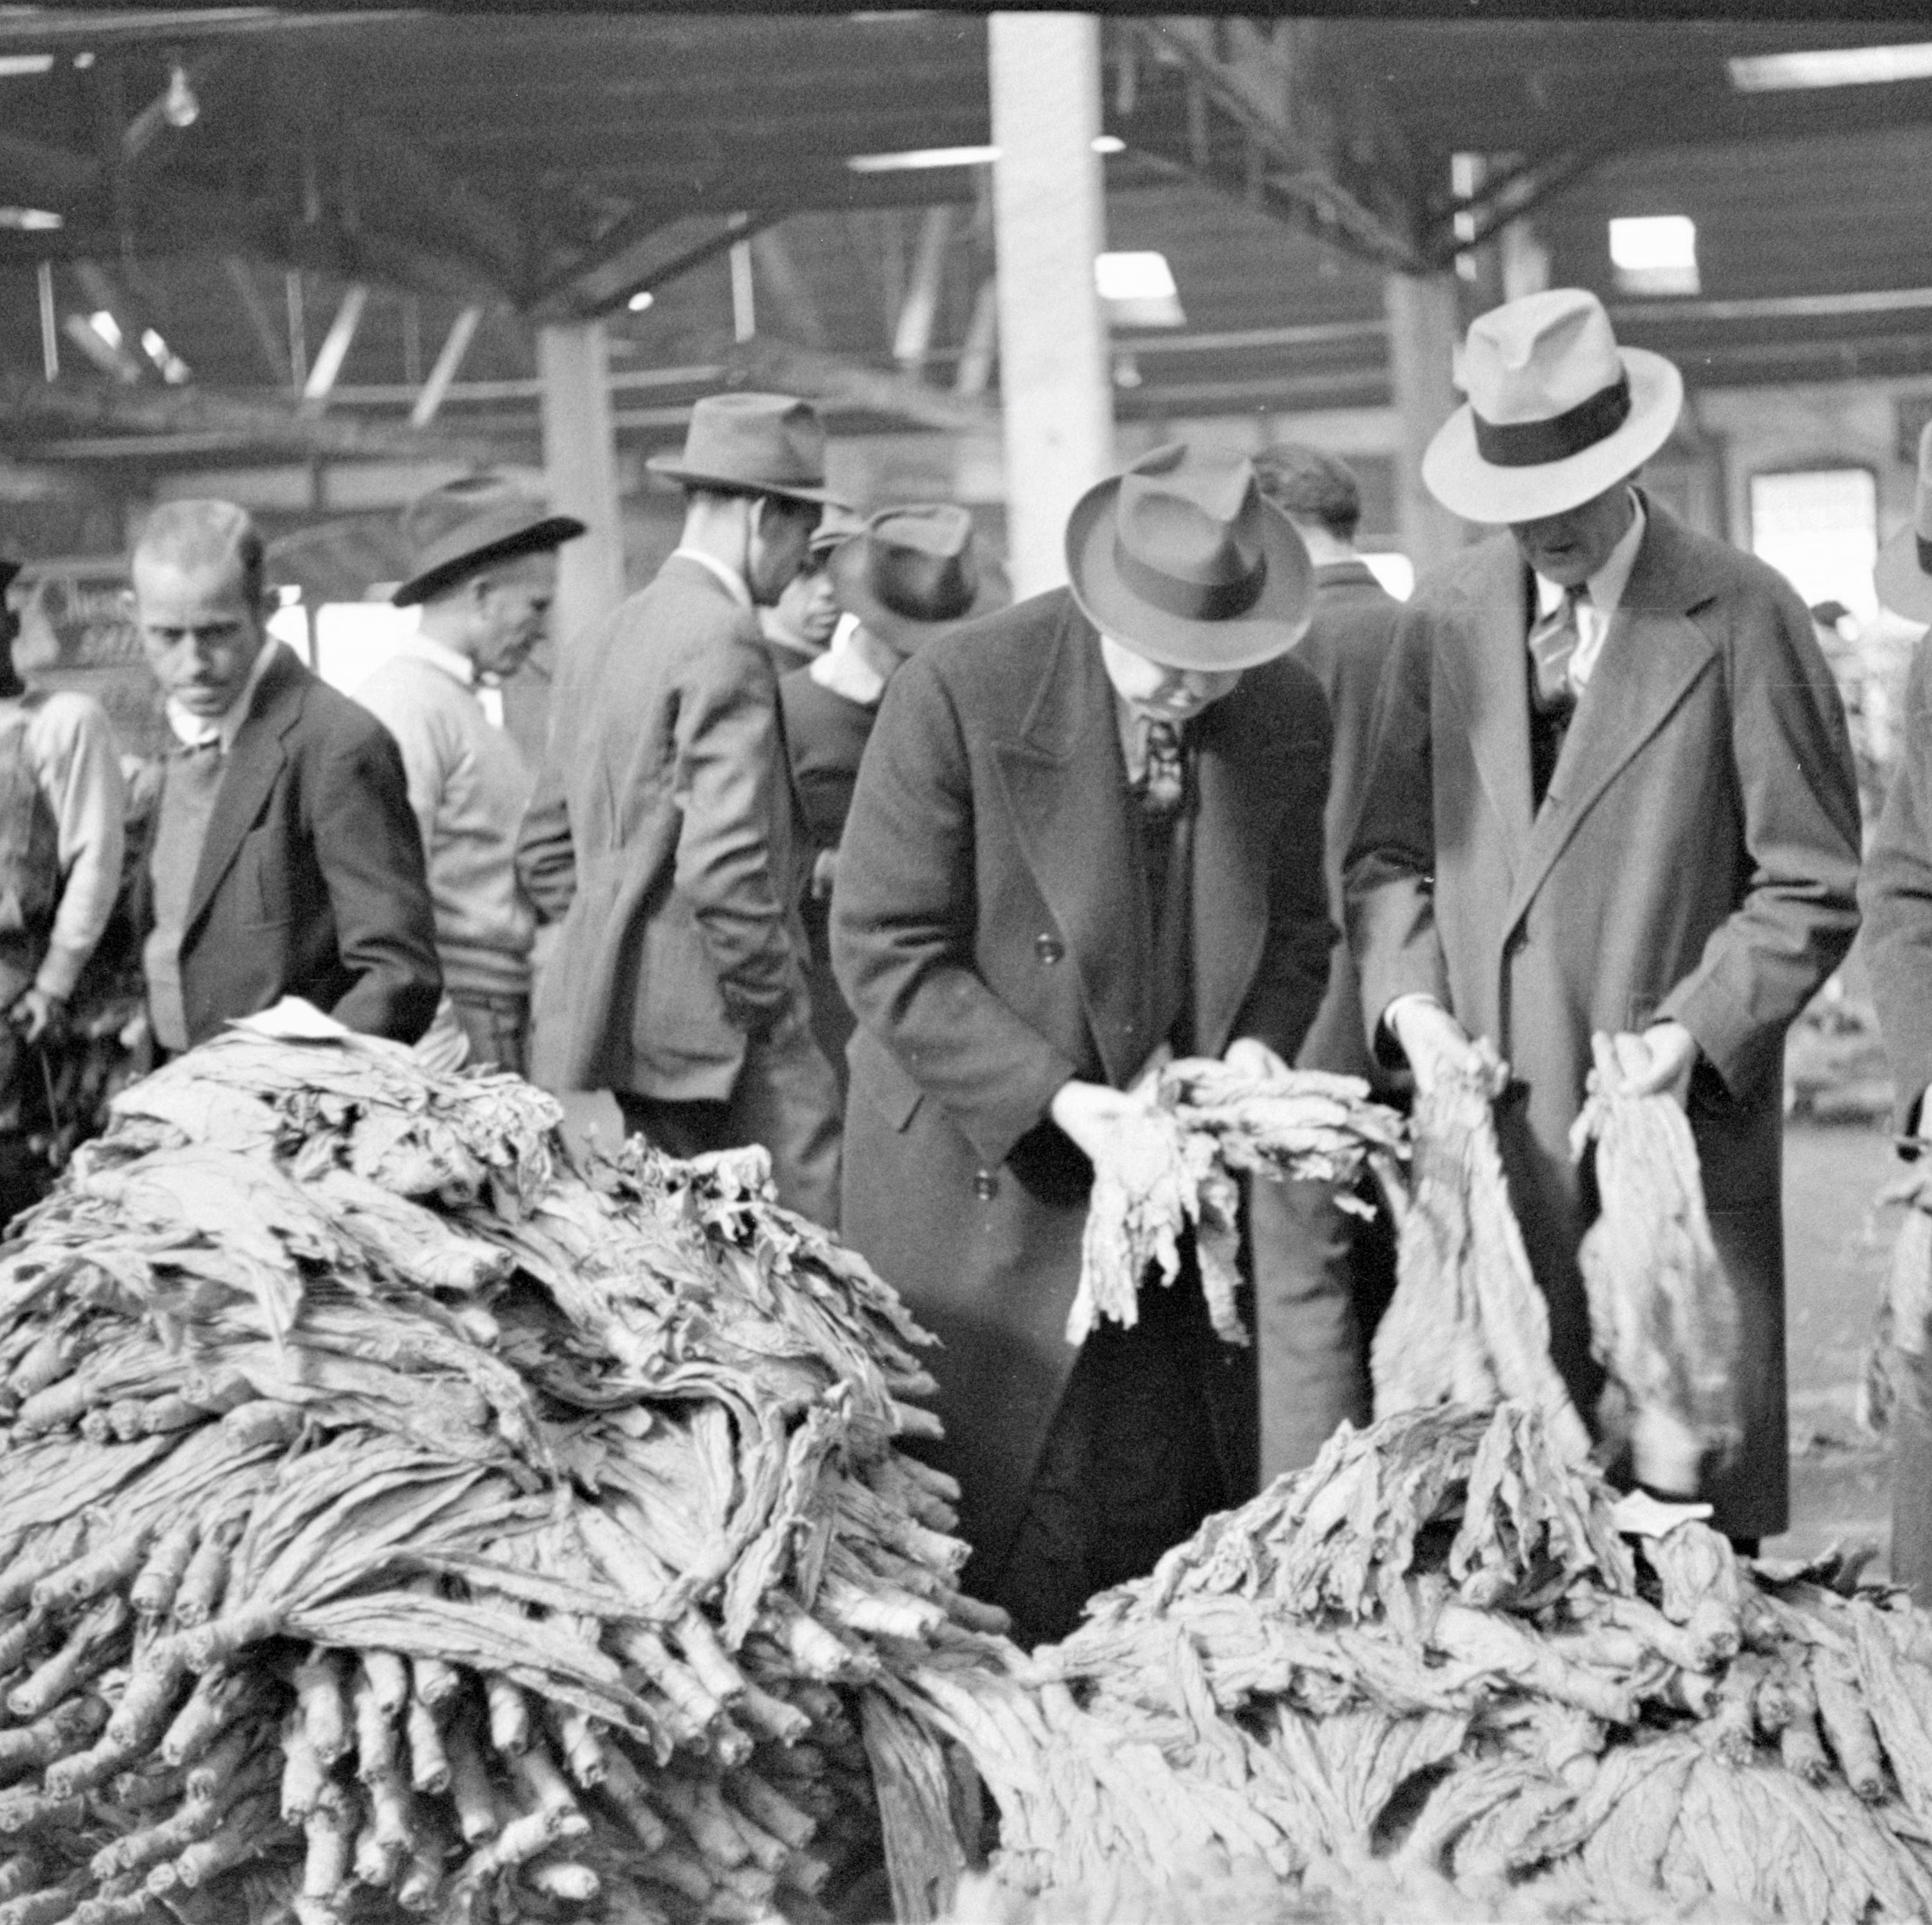 Visiting Our Past: Brightleaf tobacco intoxication the 1880s